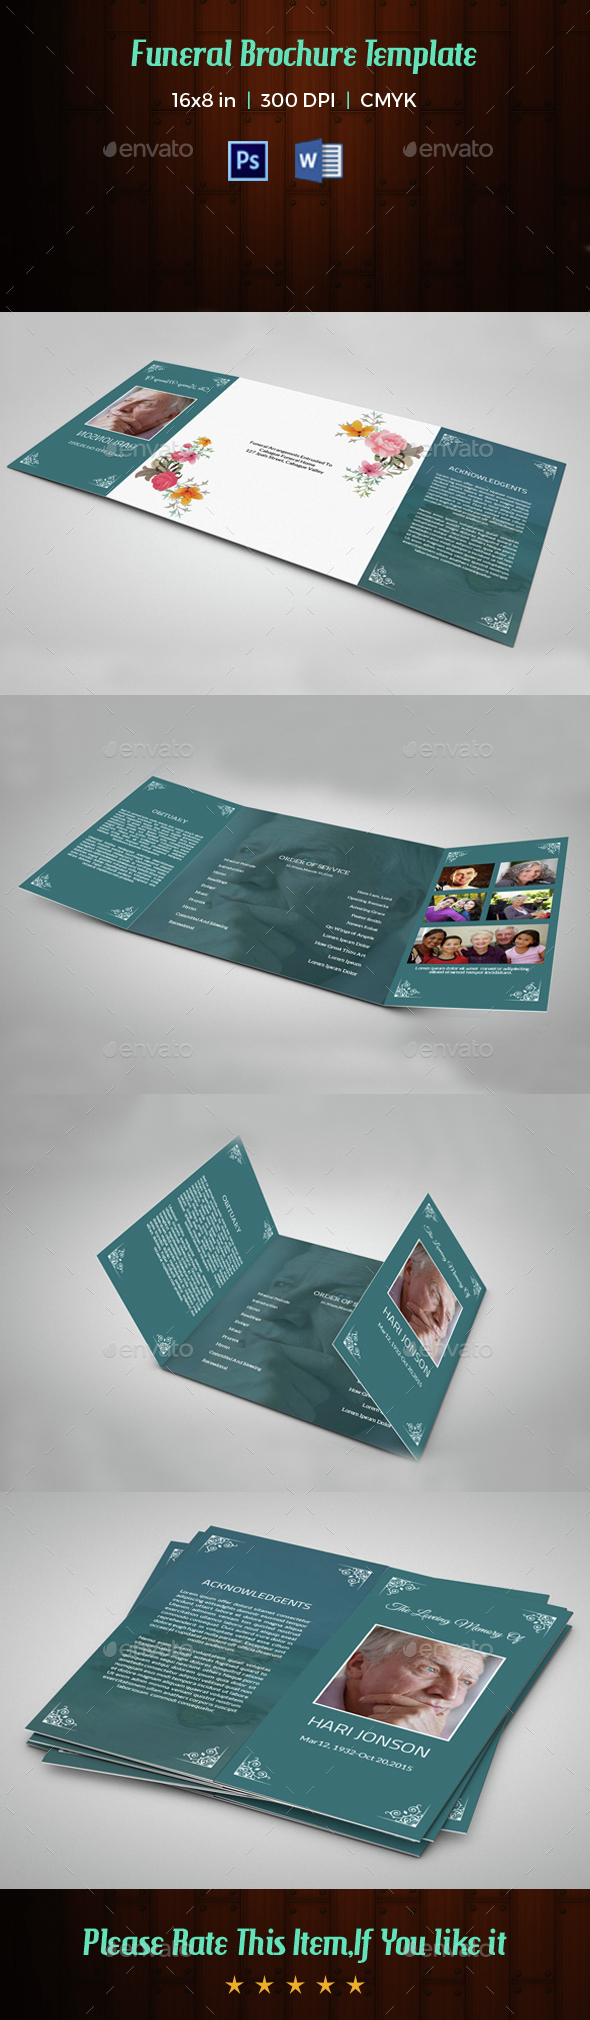 Funeral Program Template-V44 | MS Word & Photoshop Template - Informational Brochures